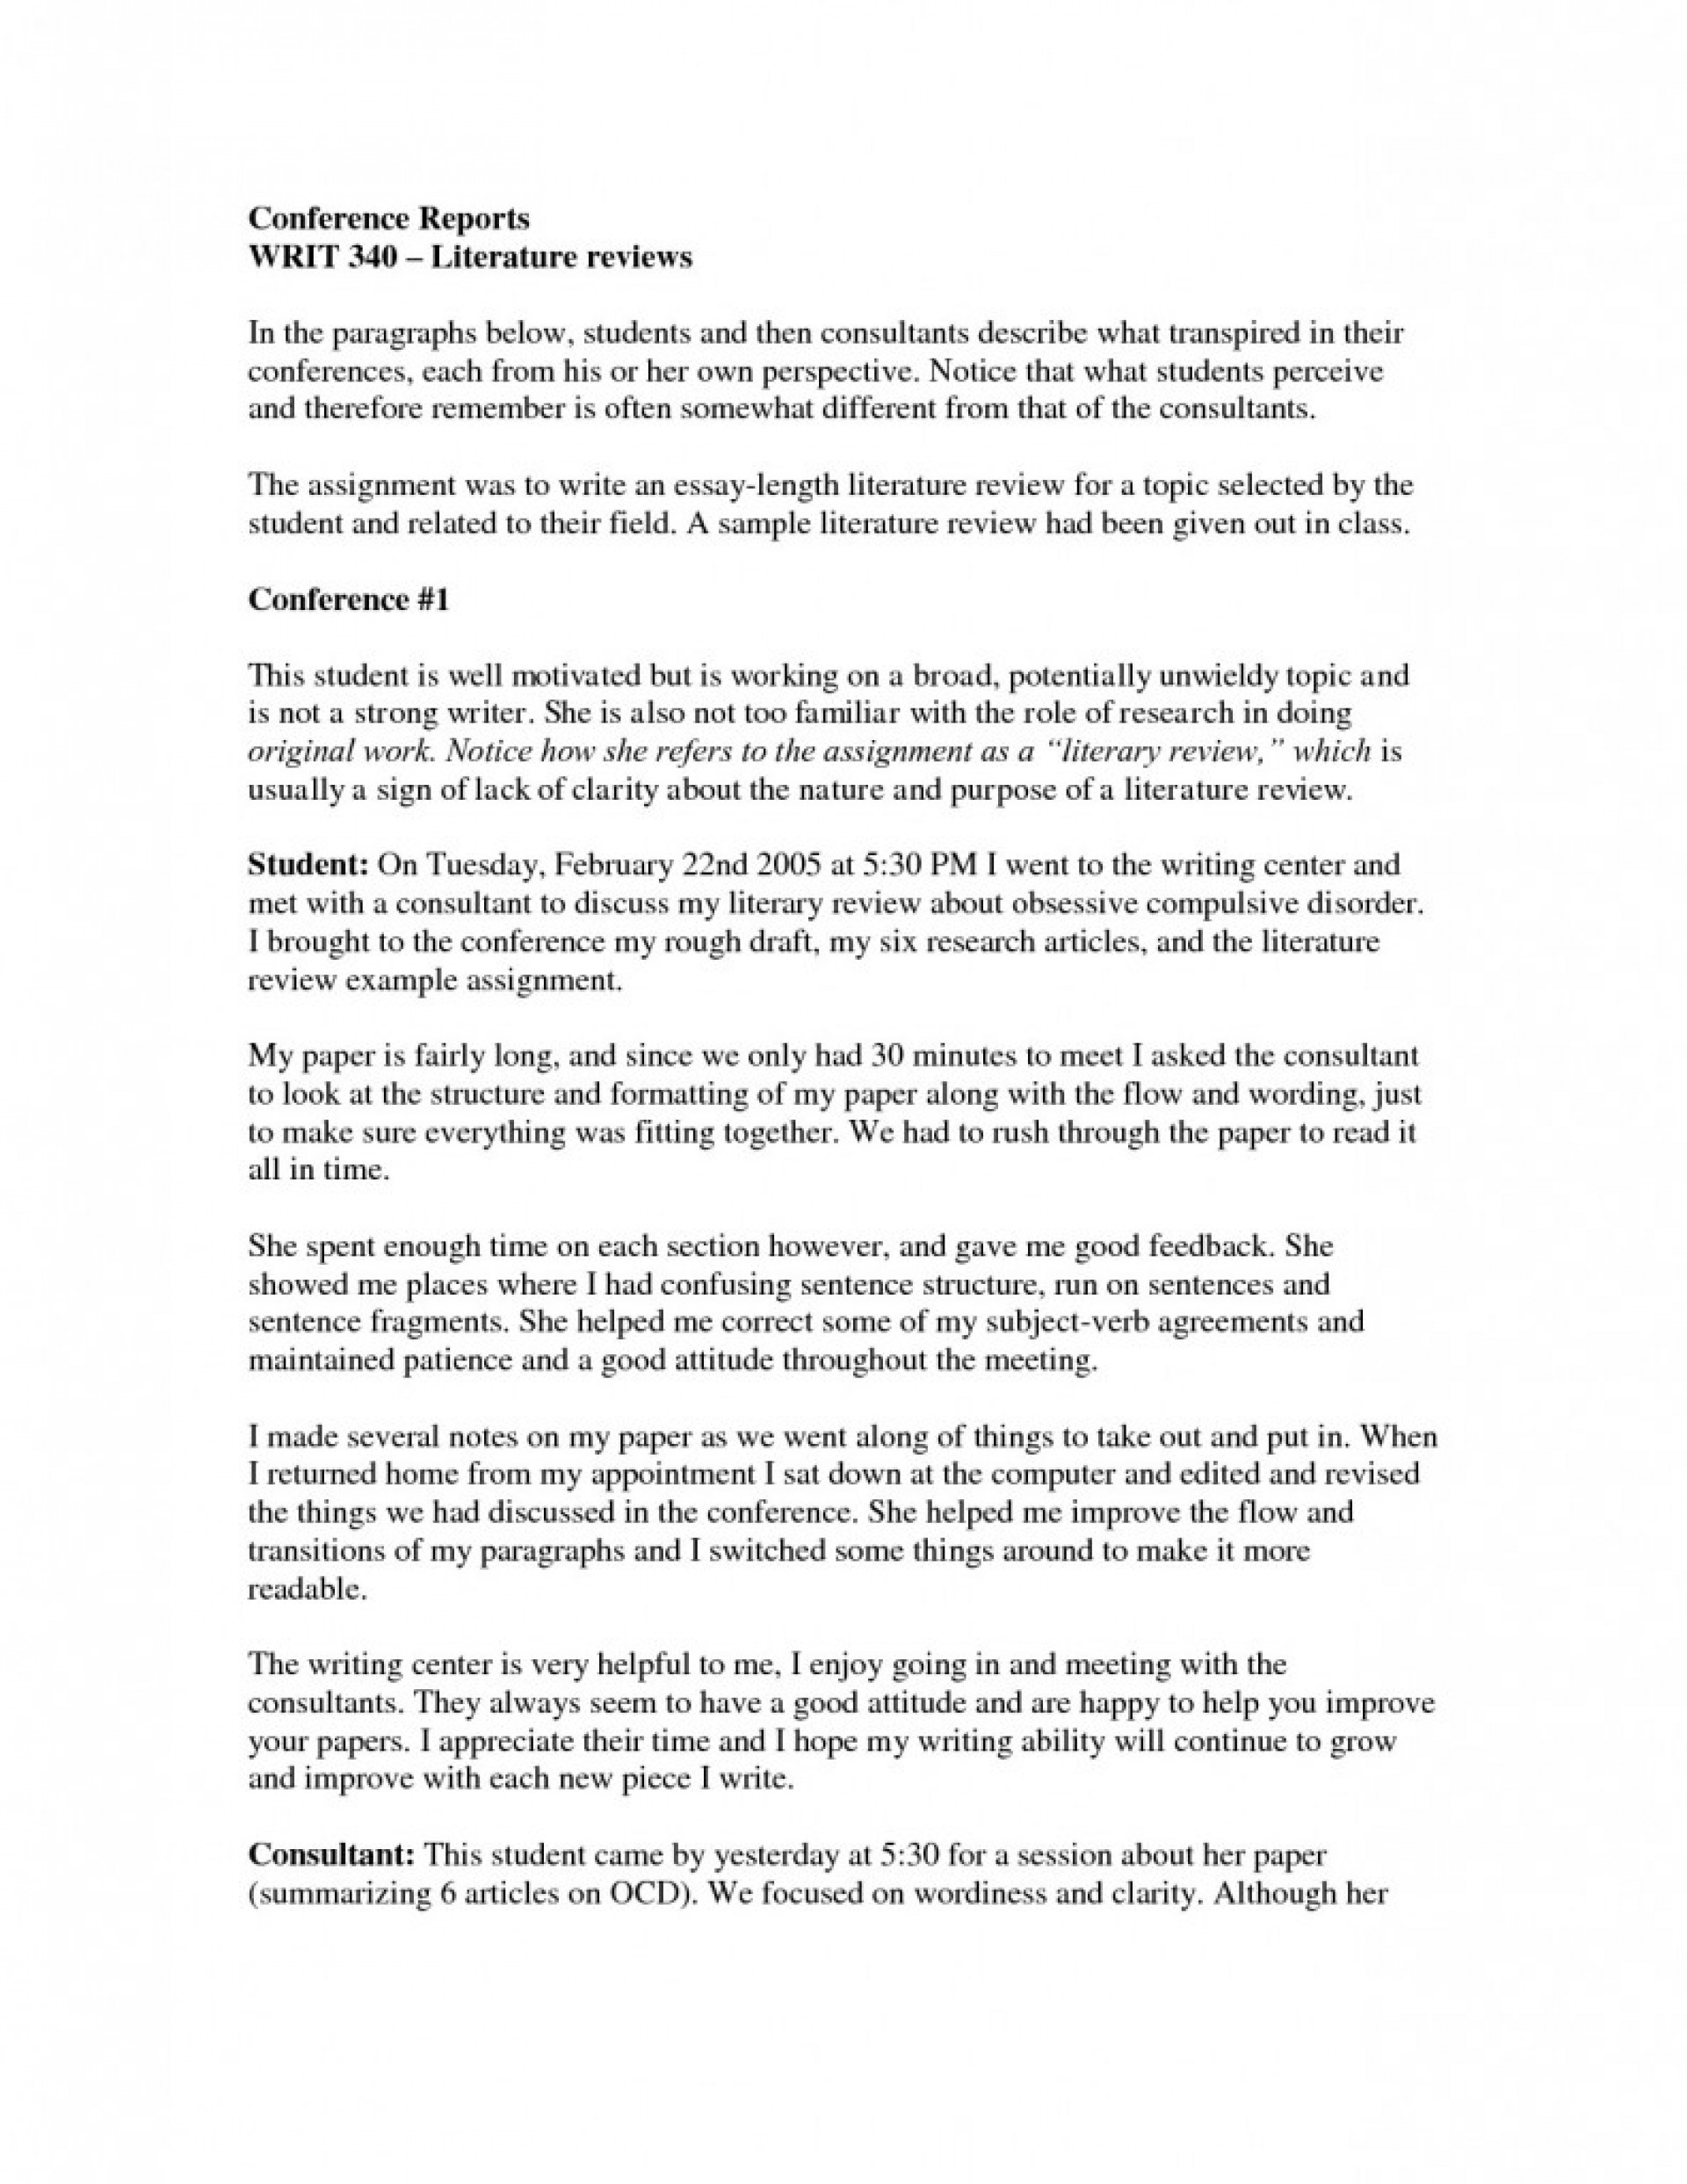 024 Resume Science Et Religion Essay On And Sample Proposal Style What Is Top A Argument The Purpose Of 1920